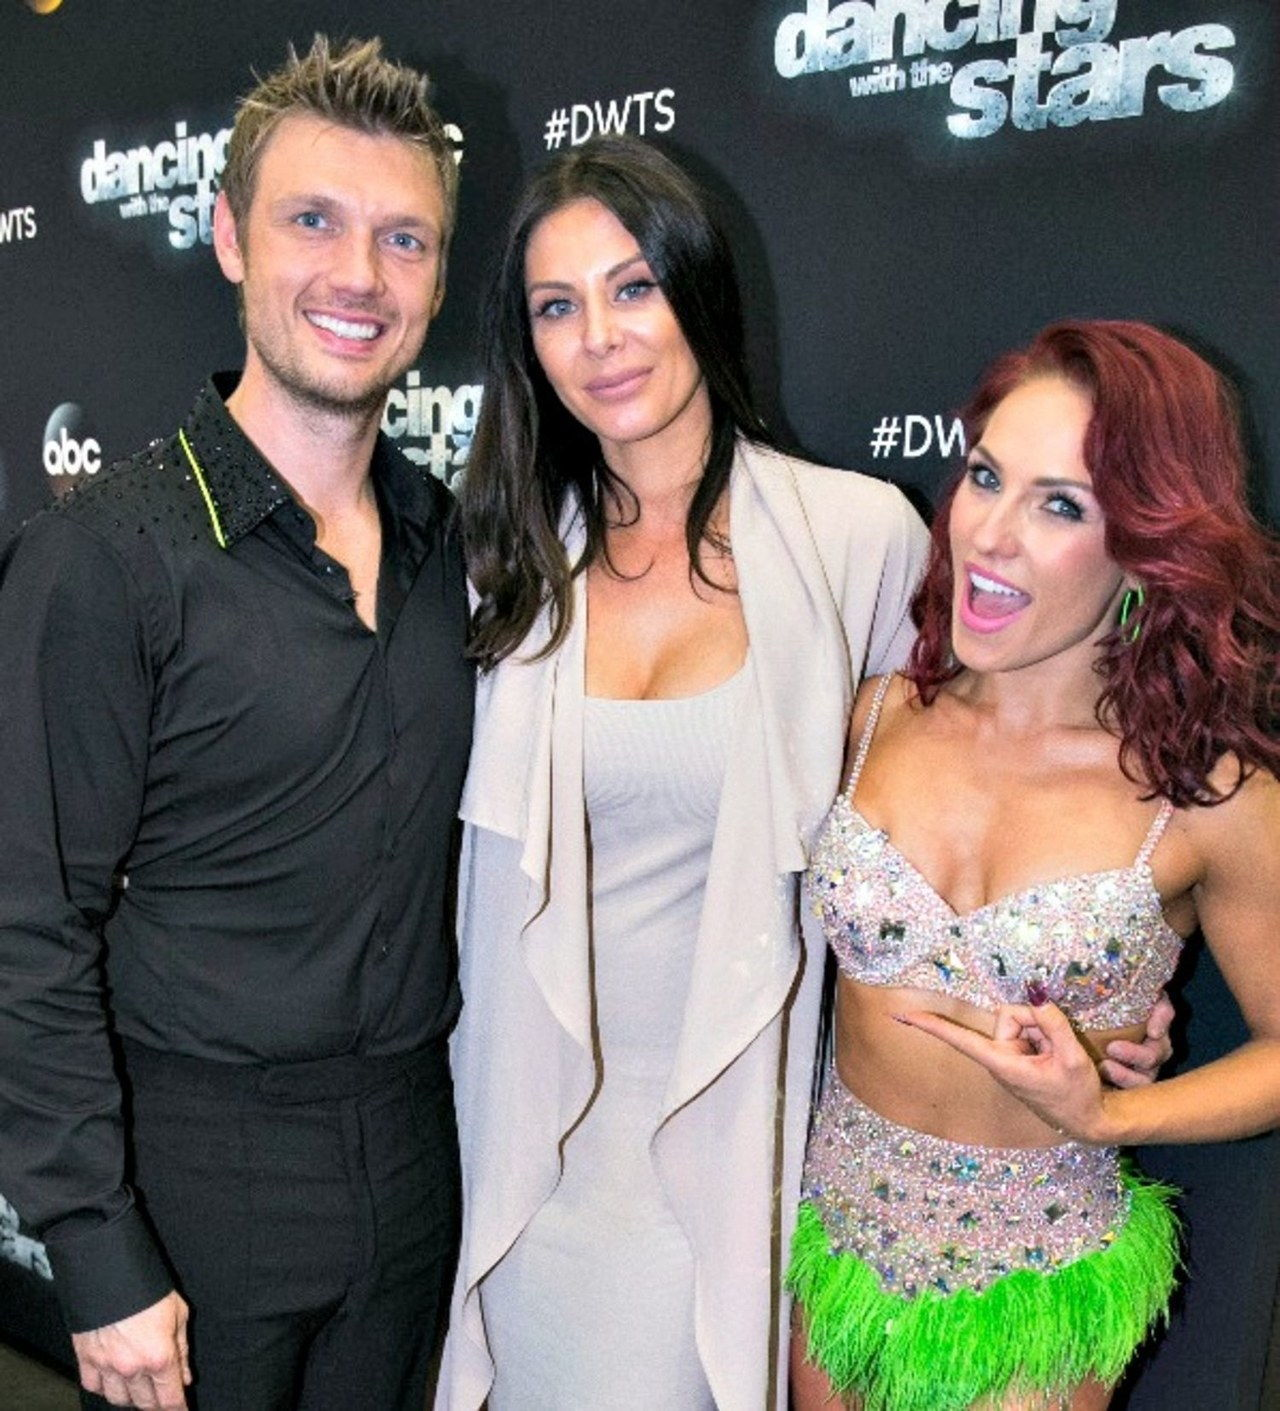 छेद carter lauren kitt sharna burgess dwts